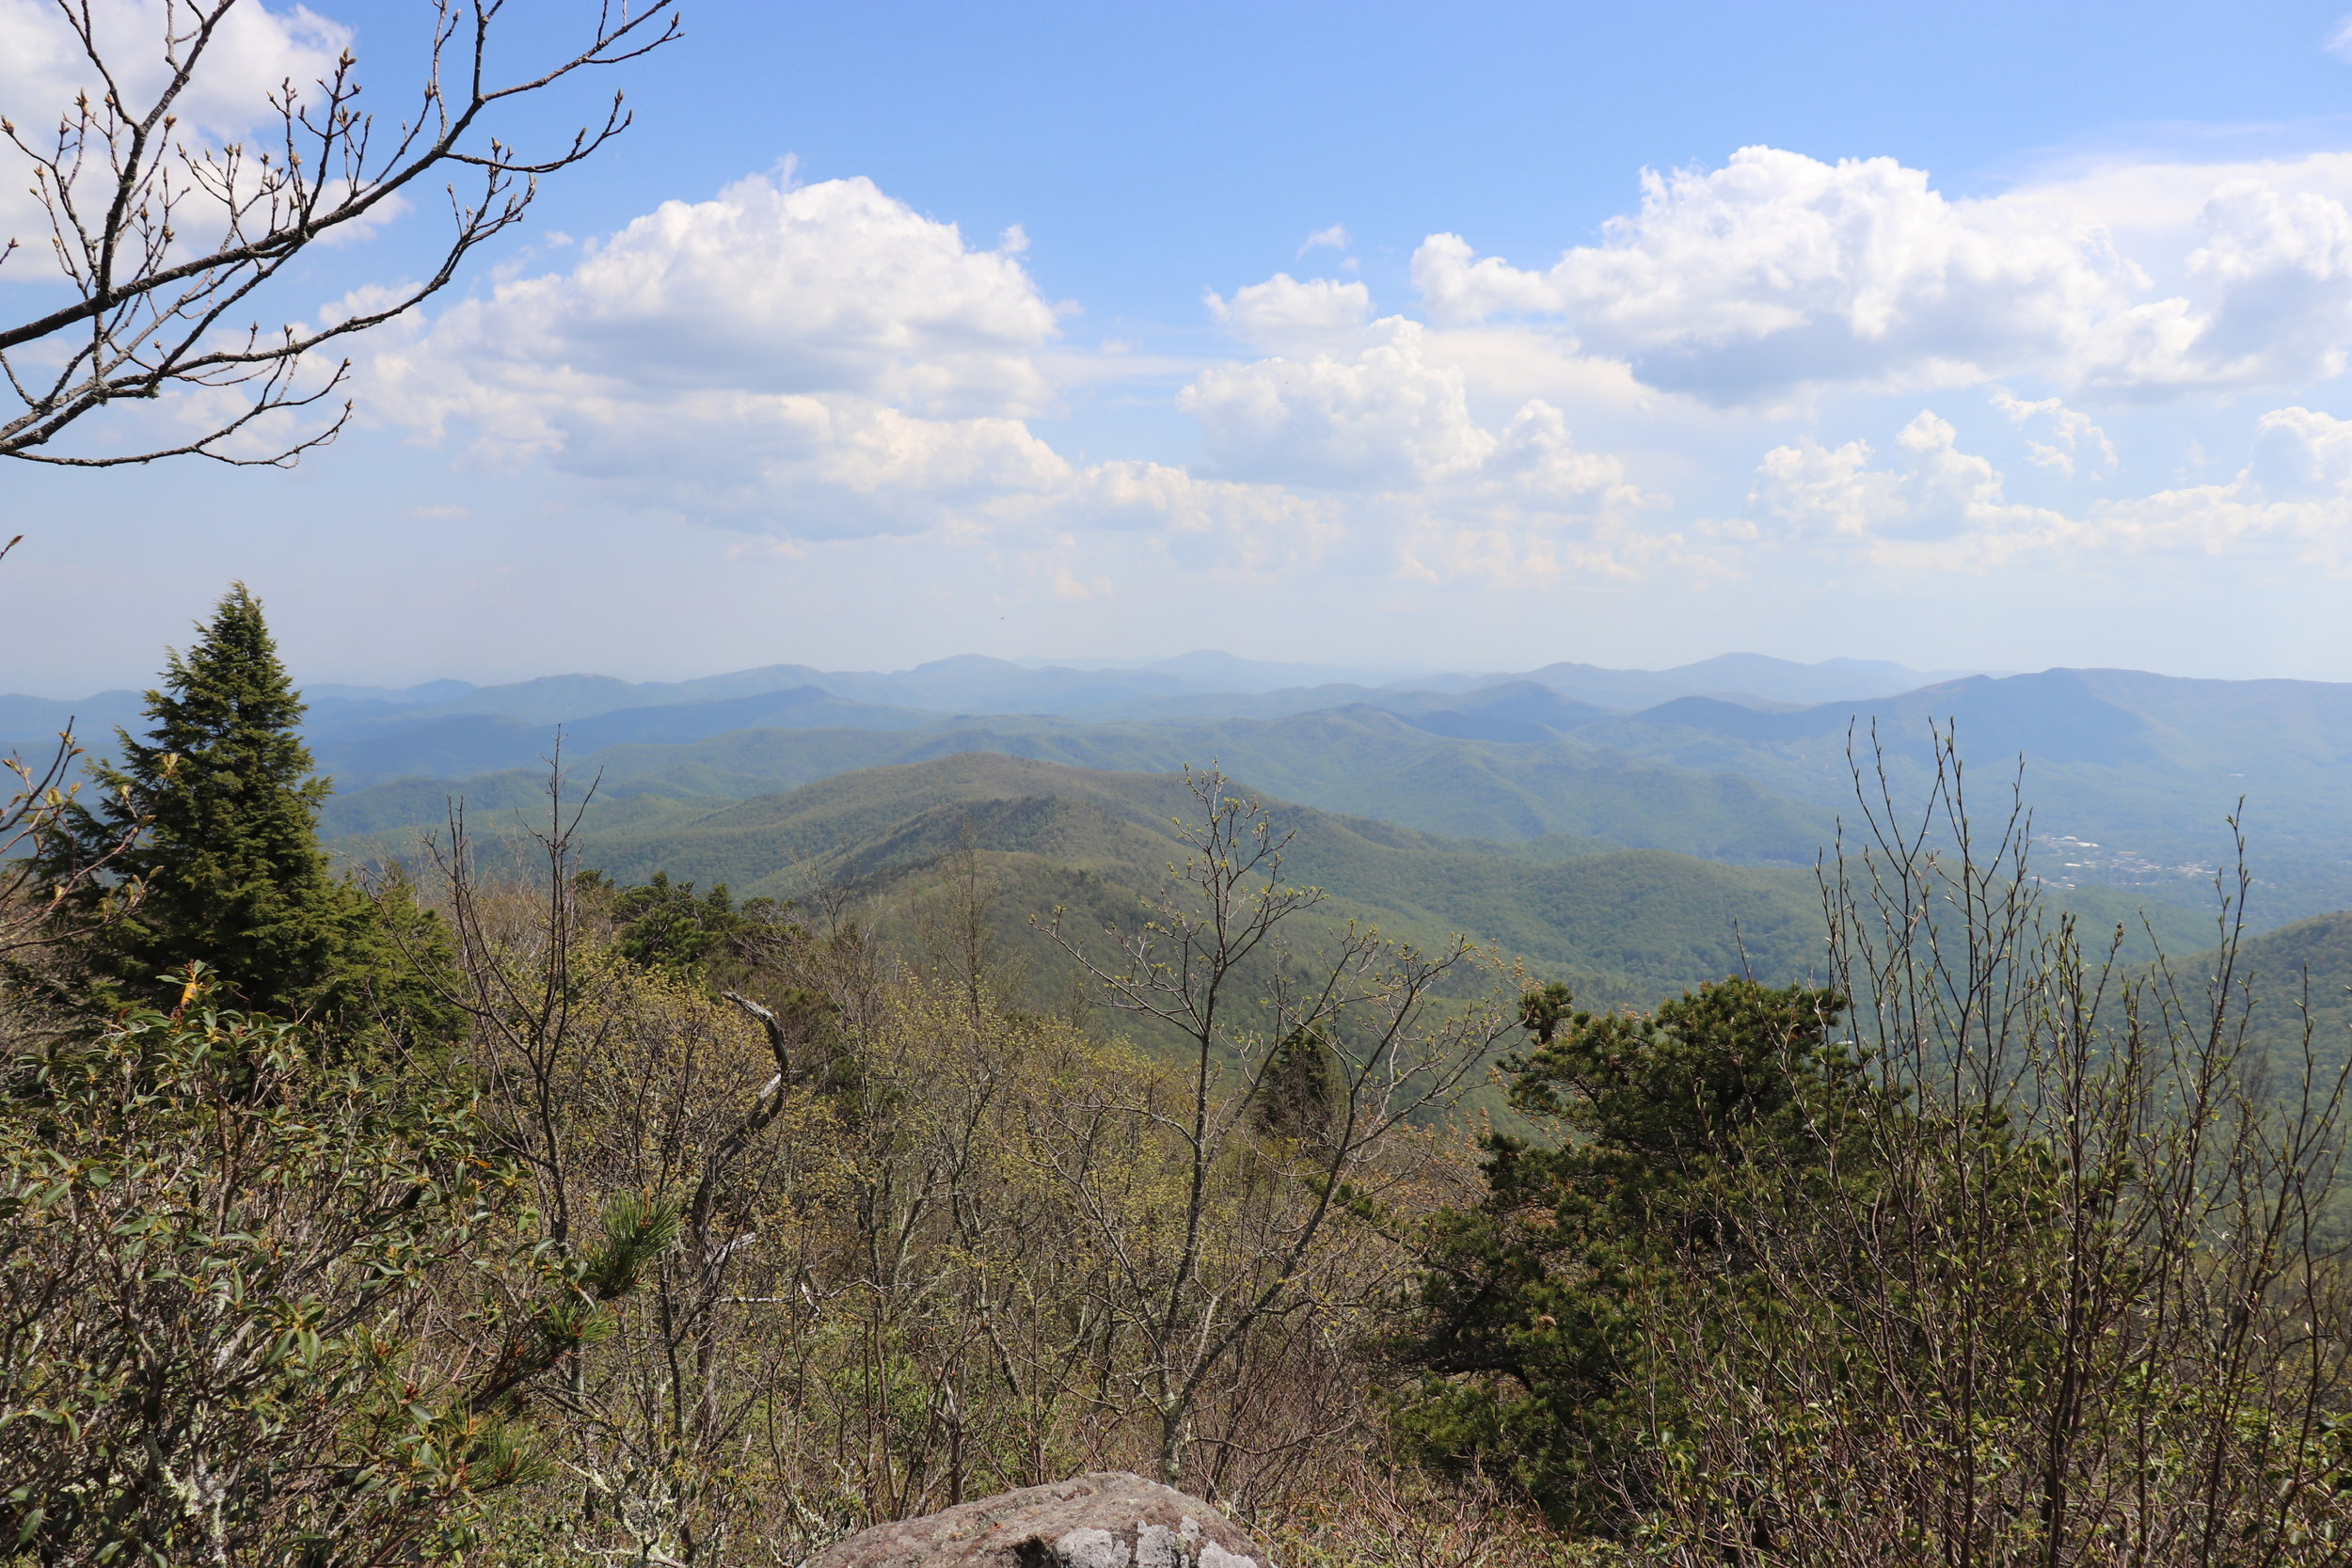 View from the Graybeard Mountain Trail © Namaste in Nature